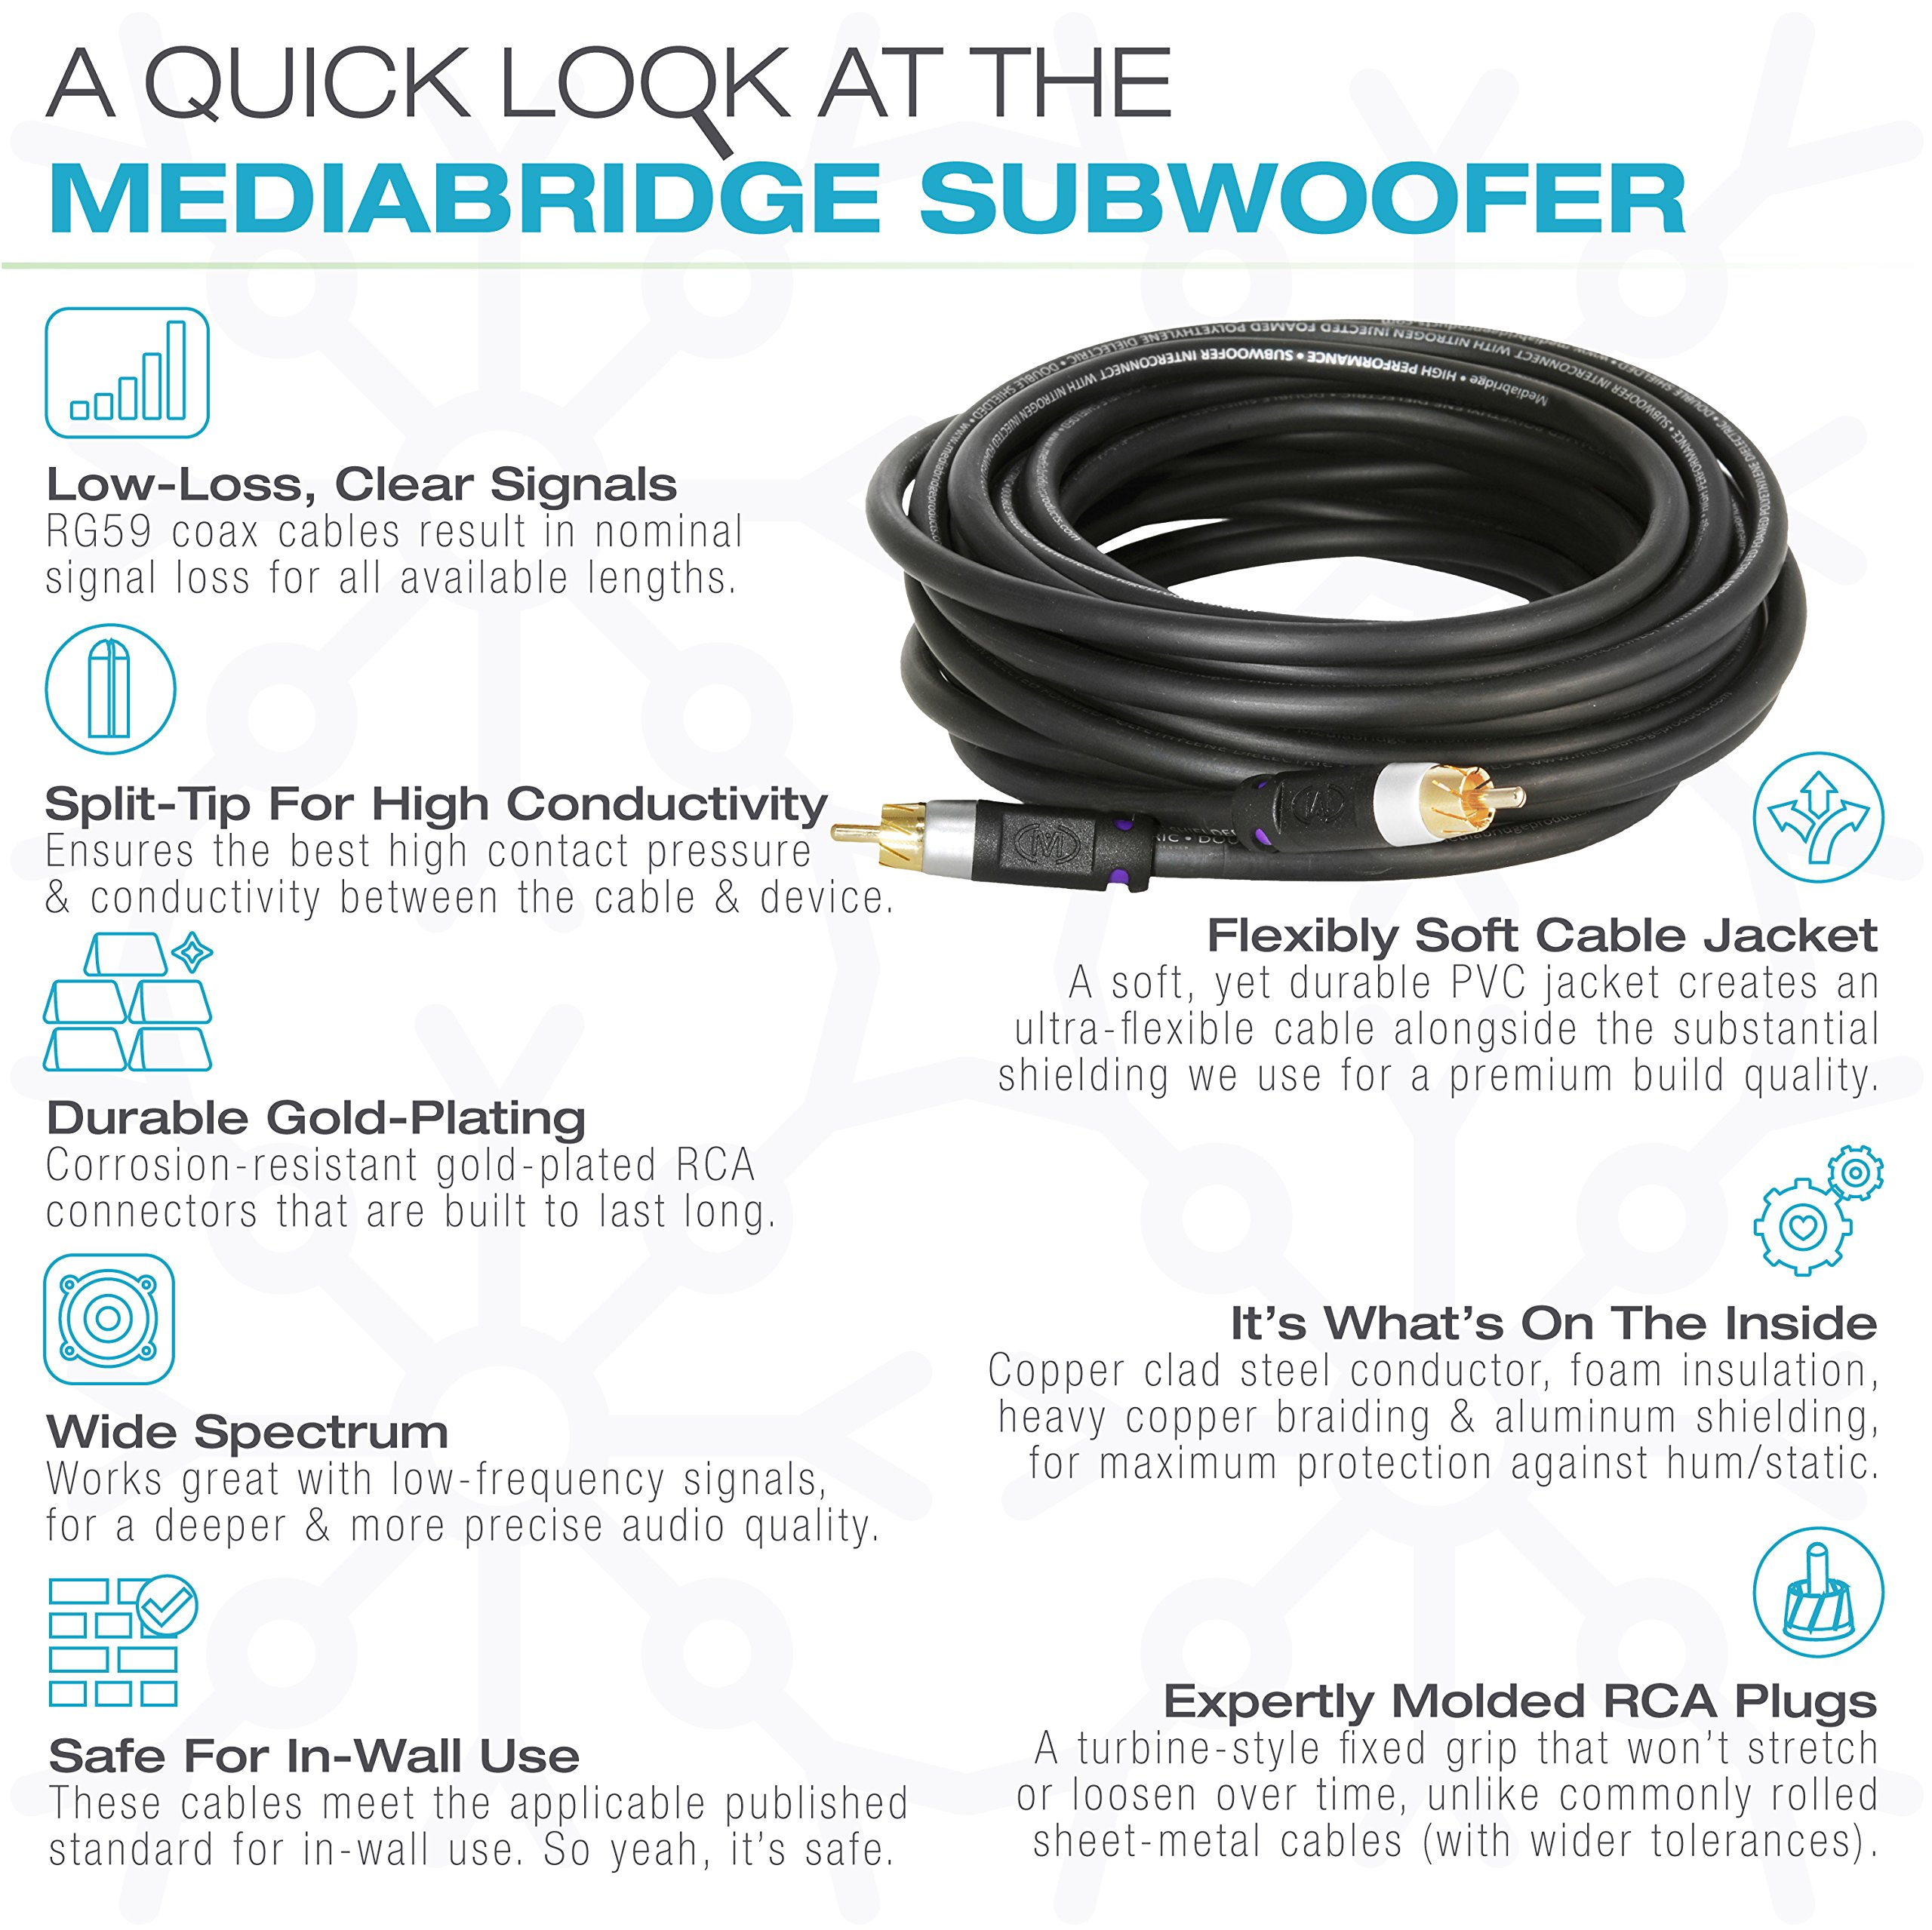 Mediabridge ULTRA Series Subwoofer Cable (75 Feet) - Dual Shield - Gold Plated - Black - (Part# CJ75-6BR-G1 ) by Mediabridge (Image #5)